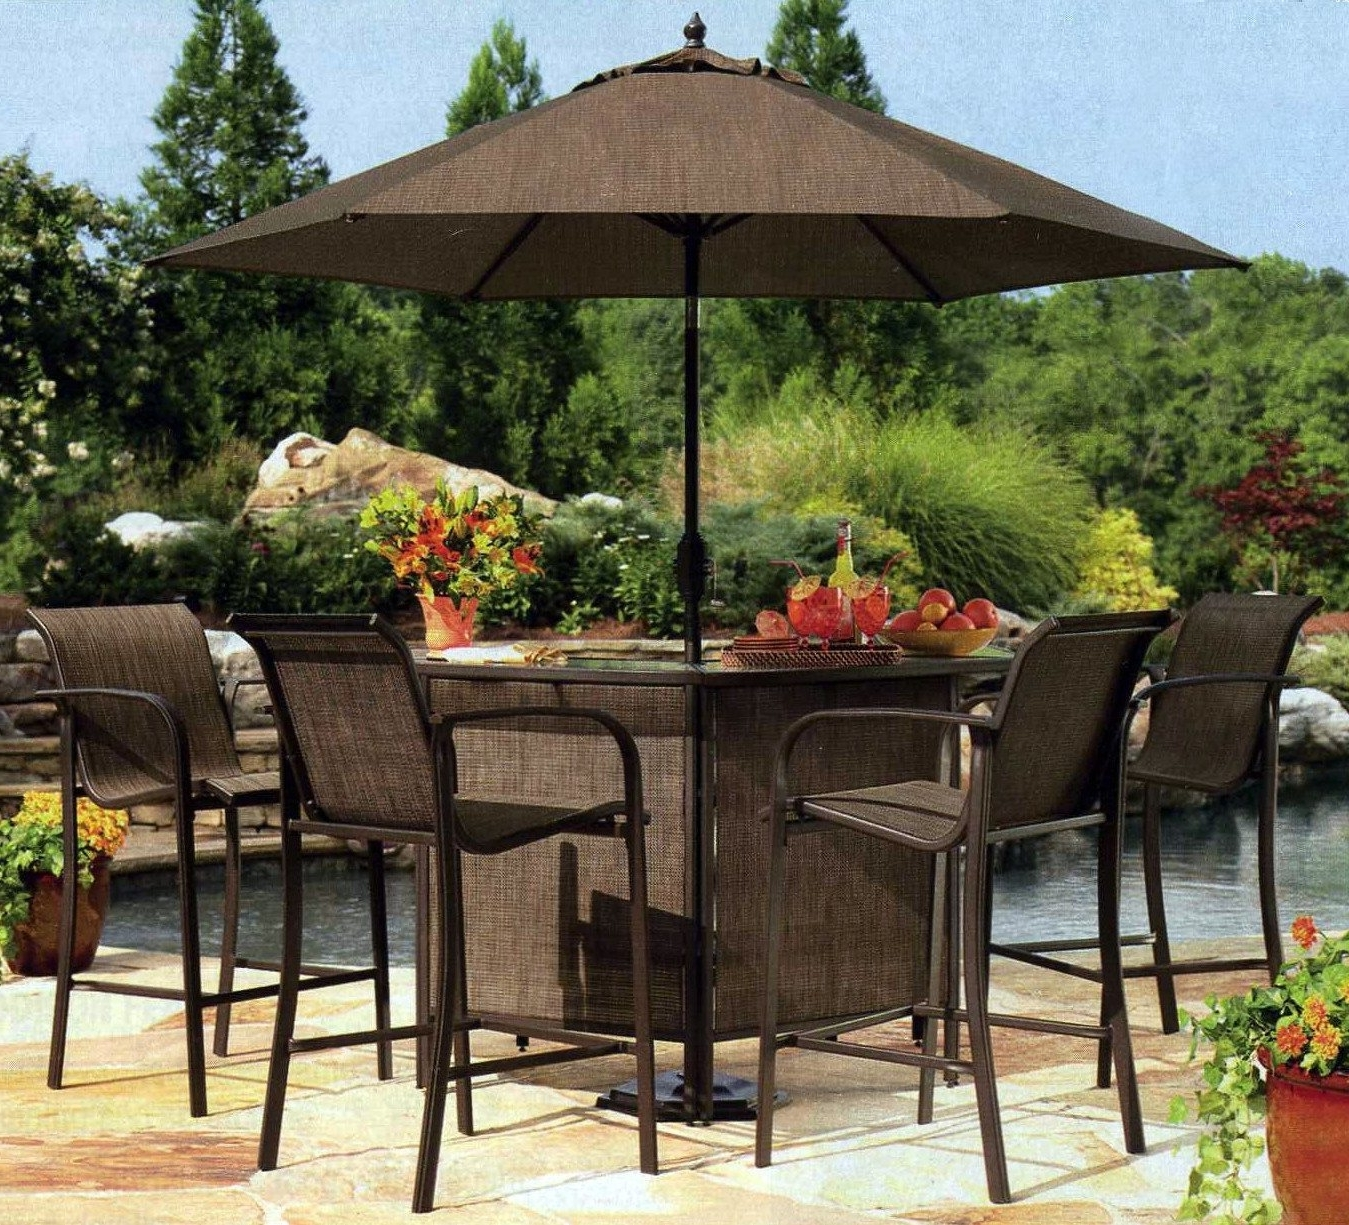 Patio Umbrellas For Bar Height Tables With Regard To 2019 Stylish Patio Bar Chairs Sets Bar Height Outdoor Patio Bar Table And (View 3 of 20)